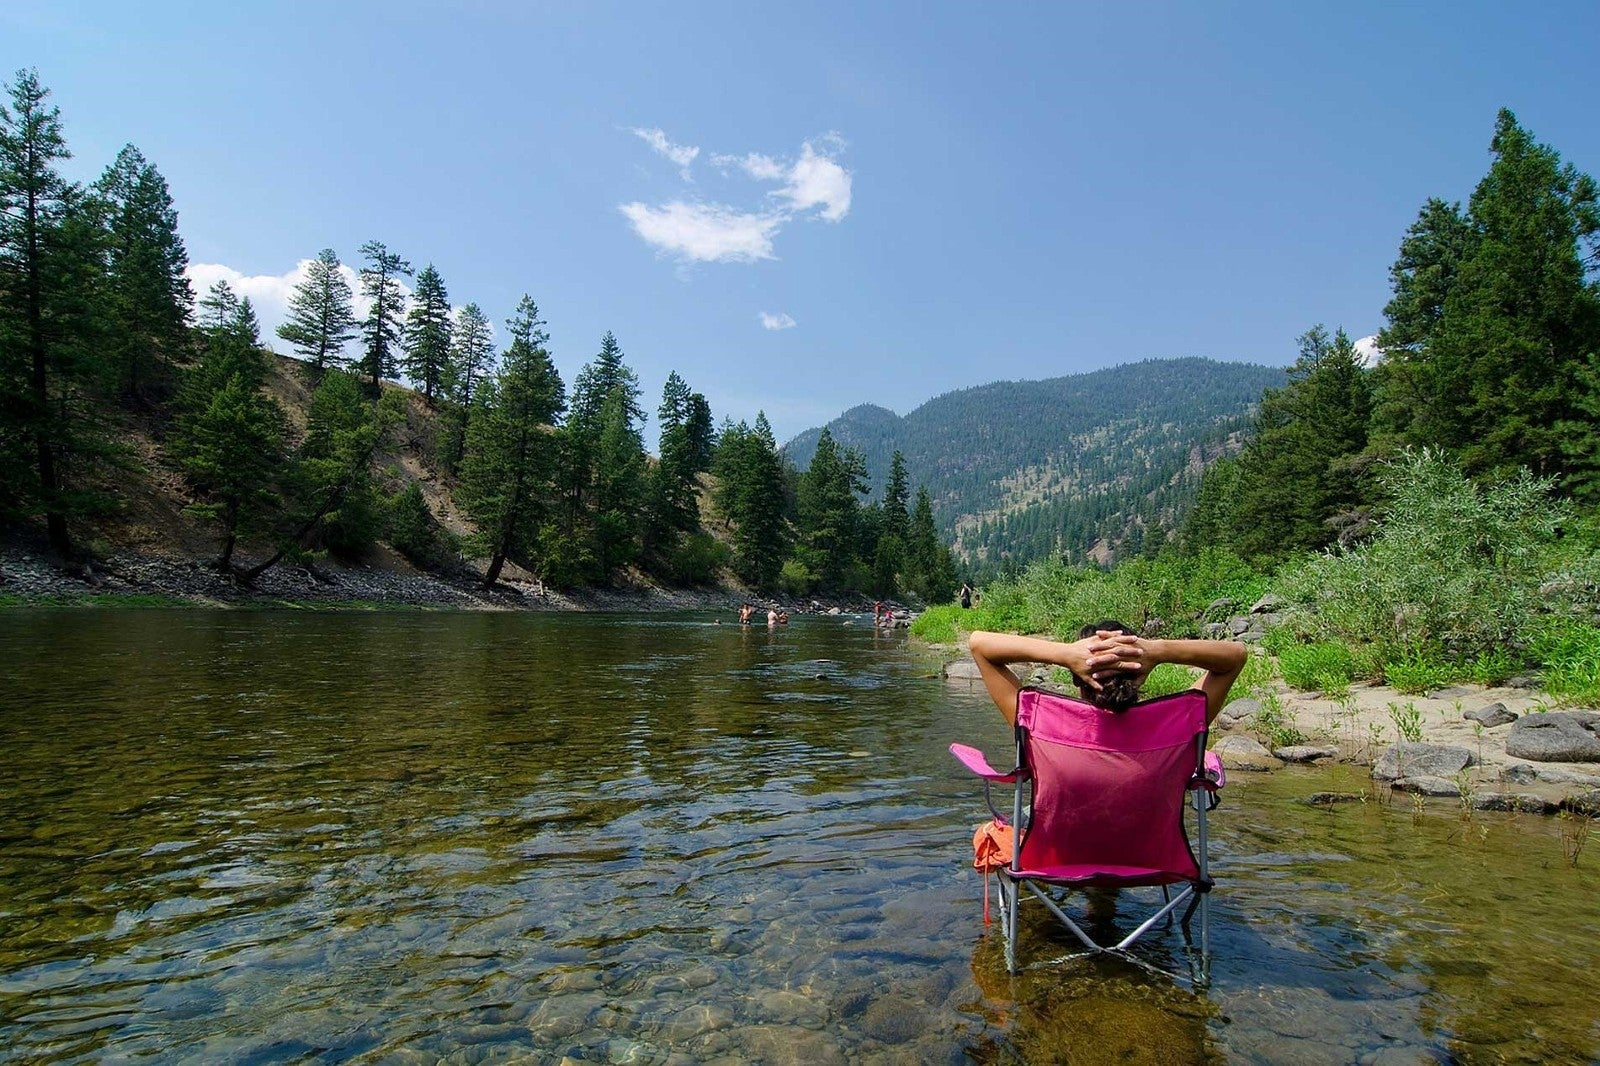 Relaxing at the Similkameen River